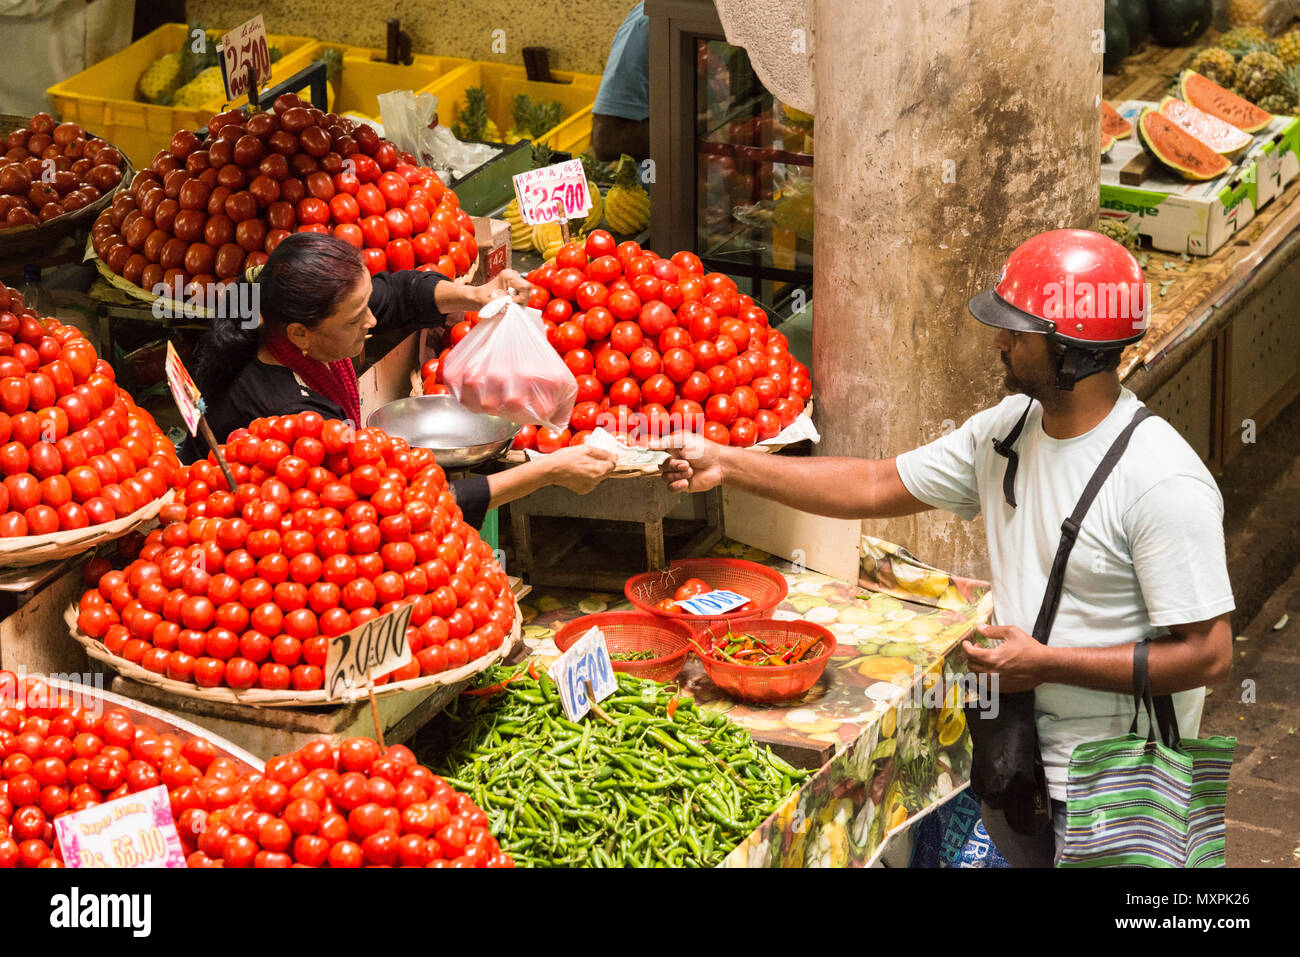 A customer in a motorcycle helmut paying for a plastic bag of tomatoes in the fruit and vegetable market, Port Louis, Mauritius Stock Photo